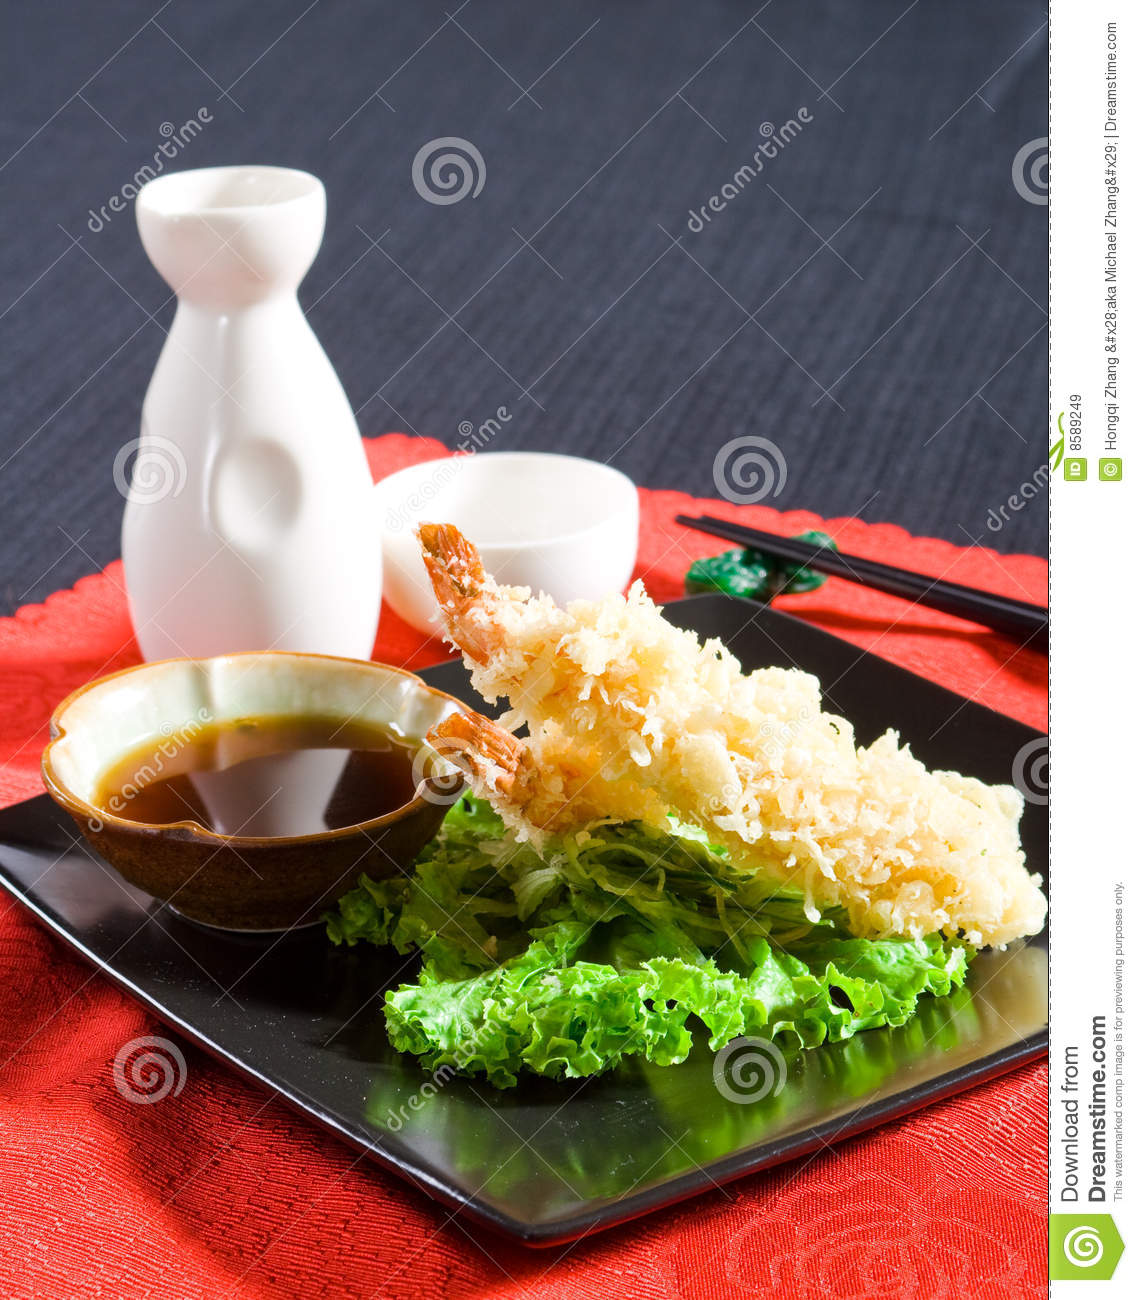 Japanese cuisine royalty free stock images image 8589249 for Aka japanese cuisine menu